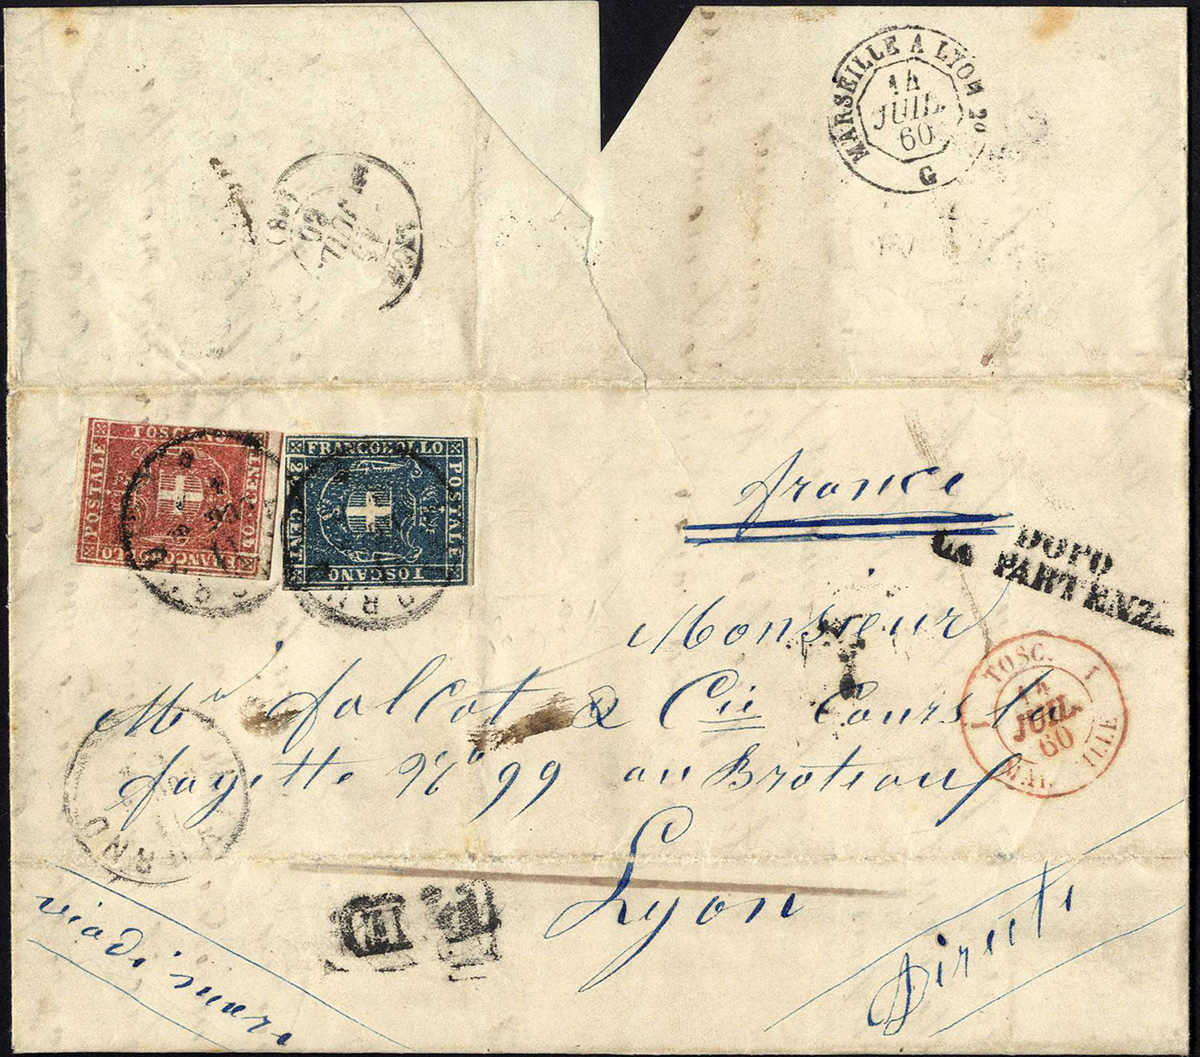 Lot 1008 - europa italien staaten toscana -  HA HARMERS AUCTIONS S.A. Treasure Hunt 3